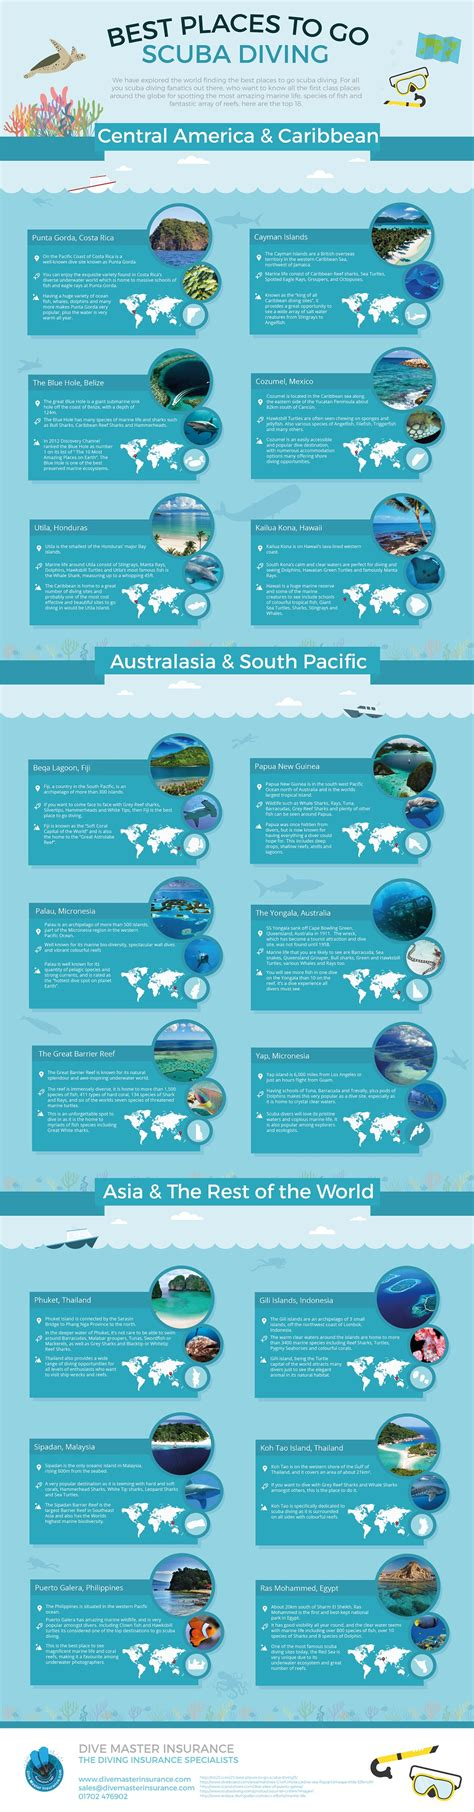 best places in the world to scuba dive best places to go scuba diving graybit